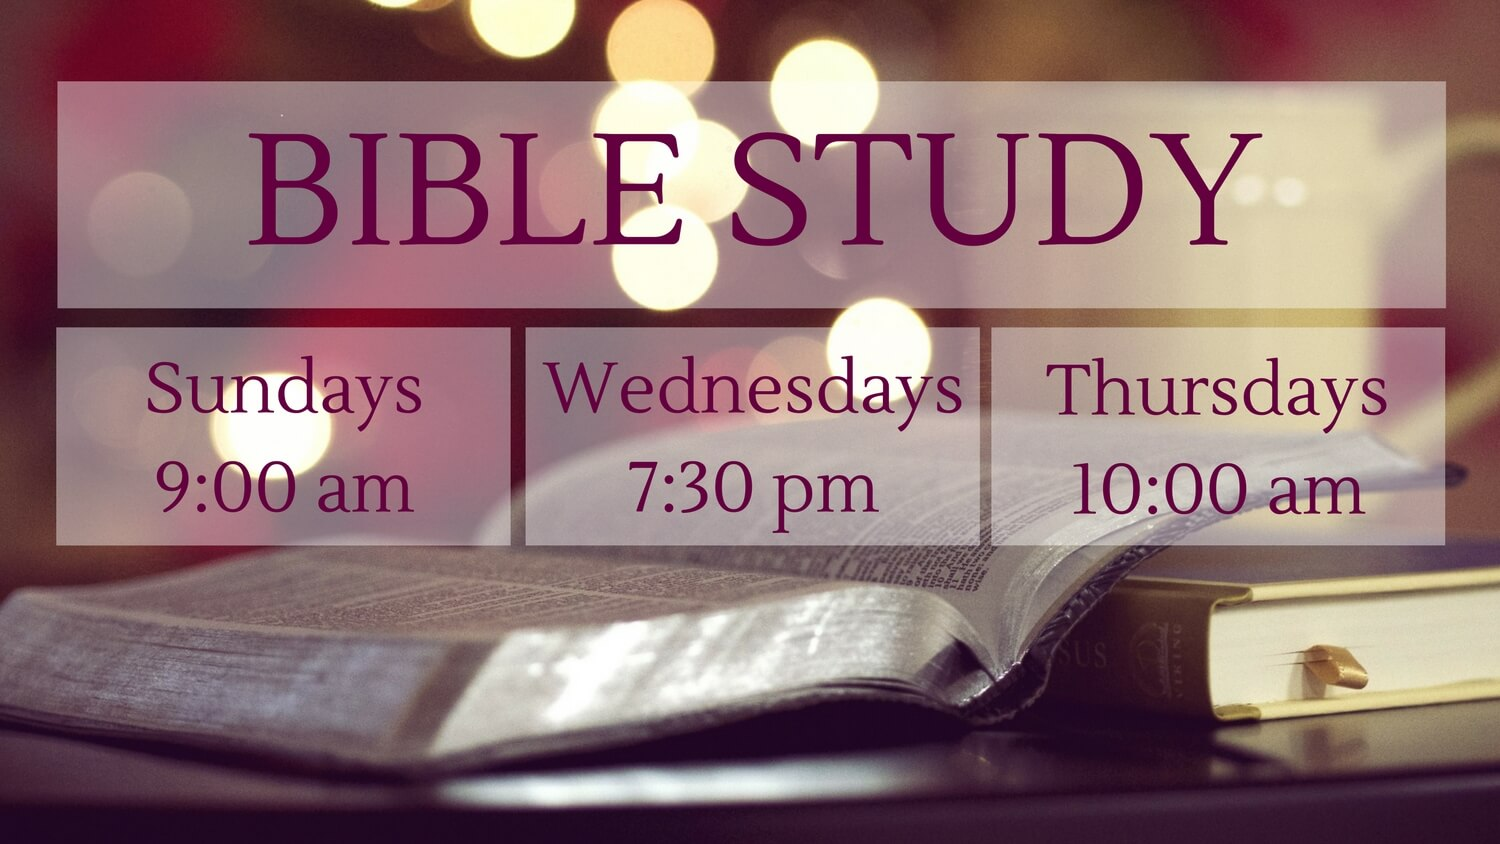 Wednesday-bible-study-north-kingstown-church